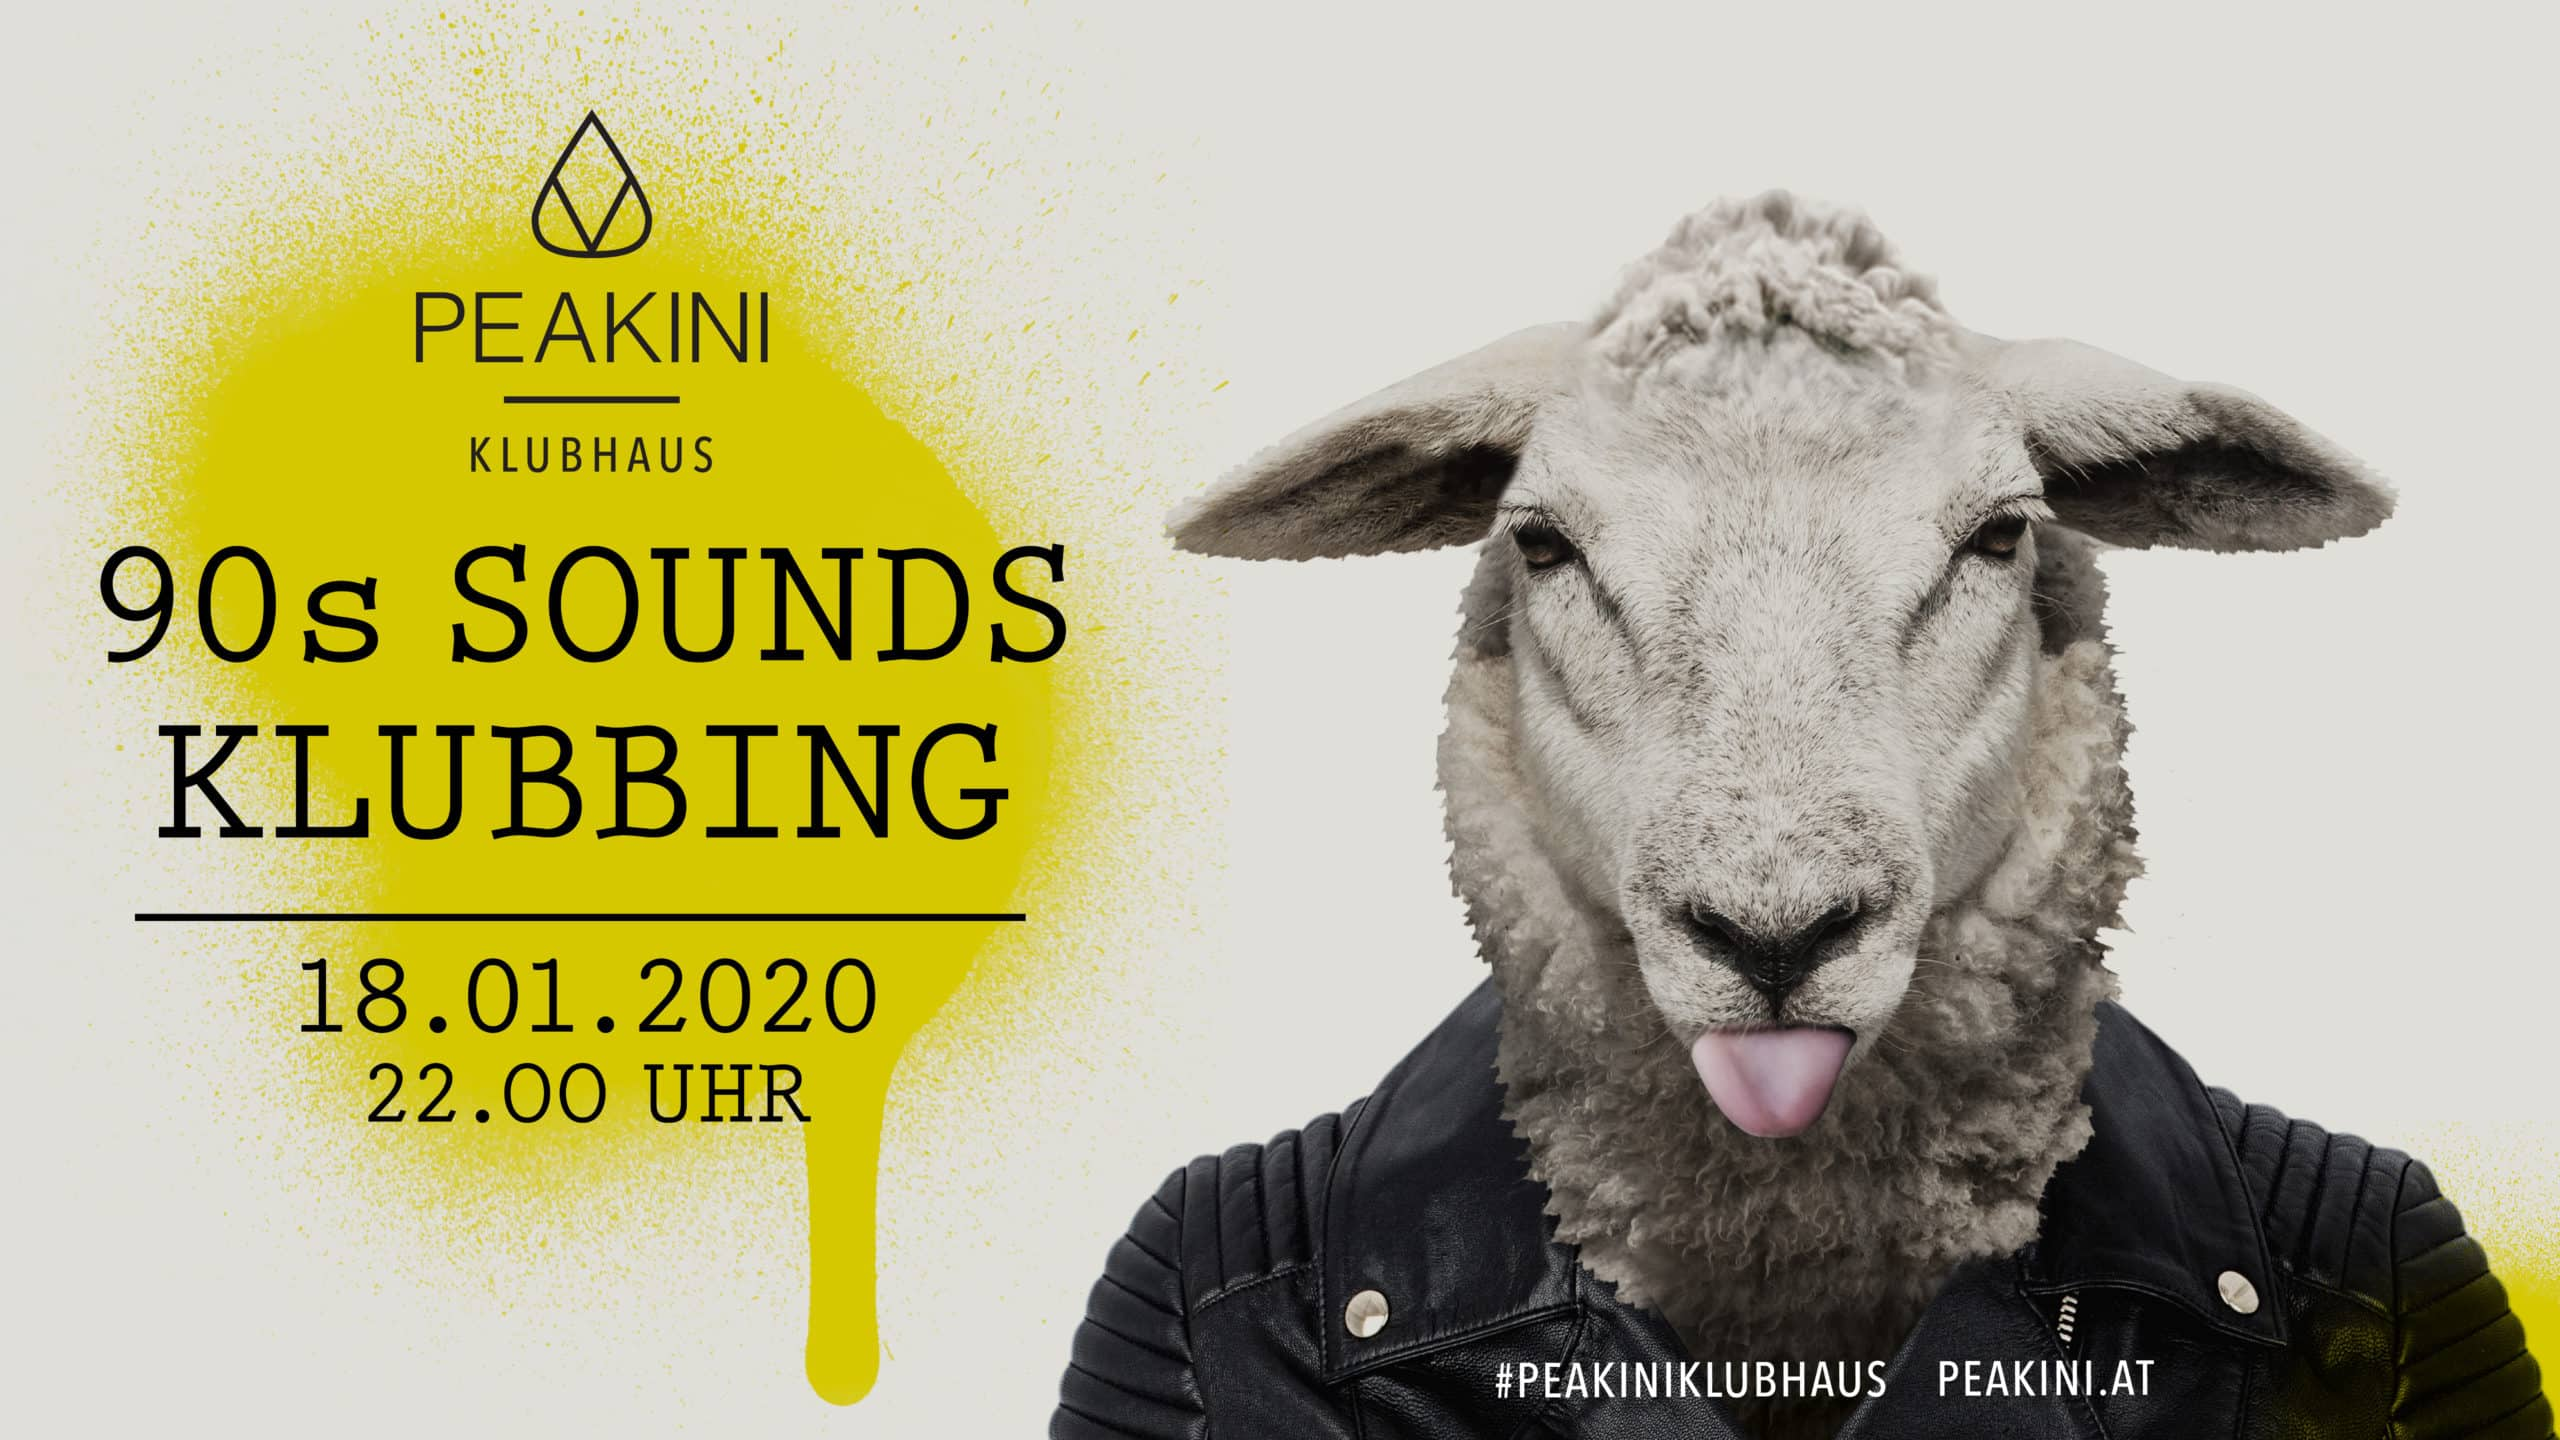 PEA 90sSounds Peakini clean Bildschirmwerbung 1920x1080 scaled - 90s SOUNDS KLUBBING